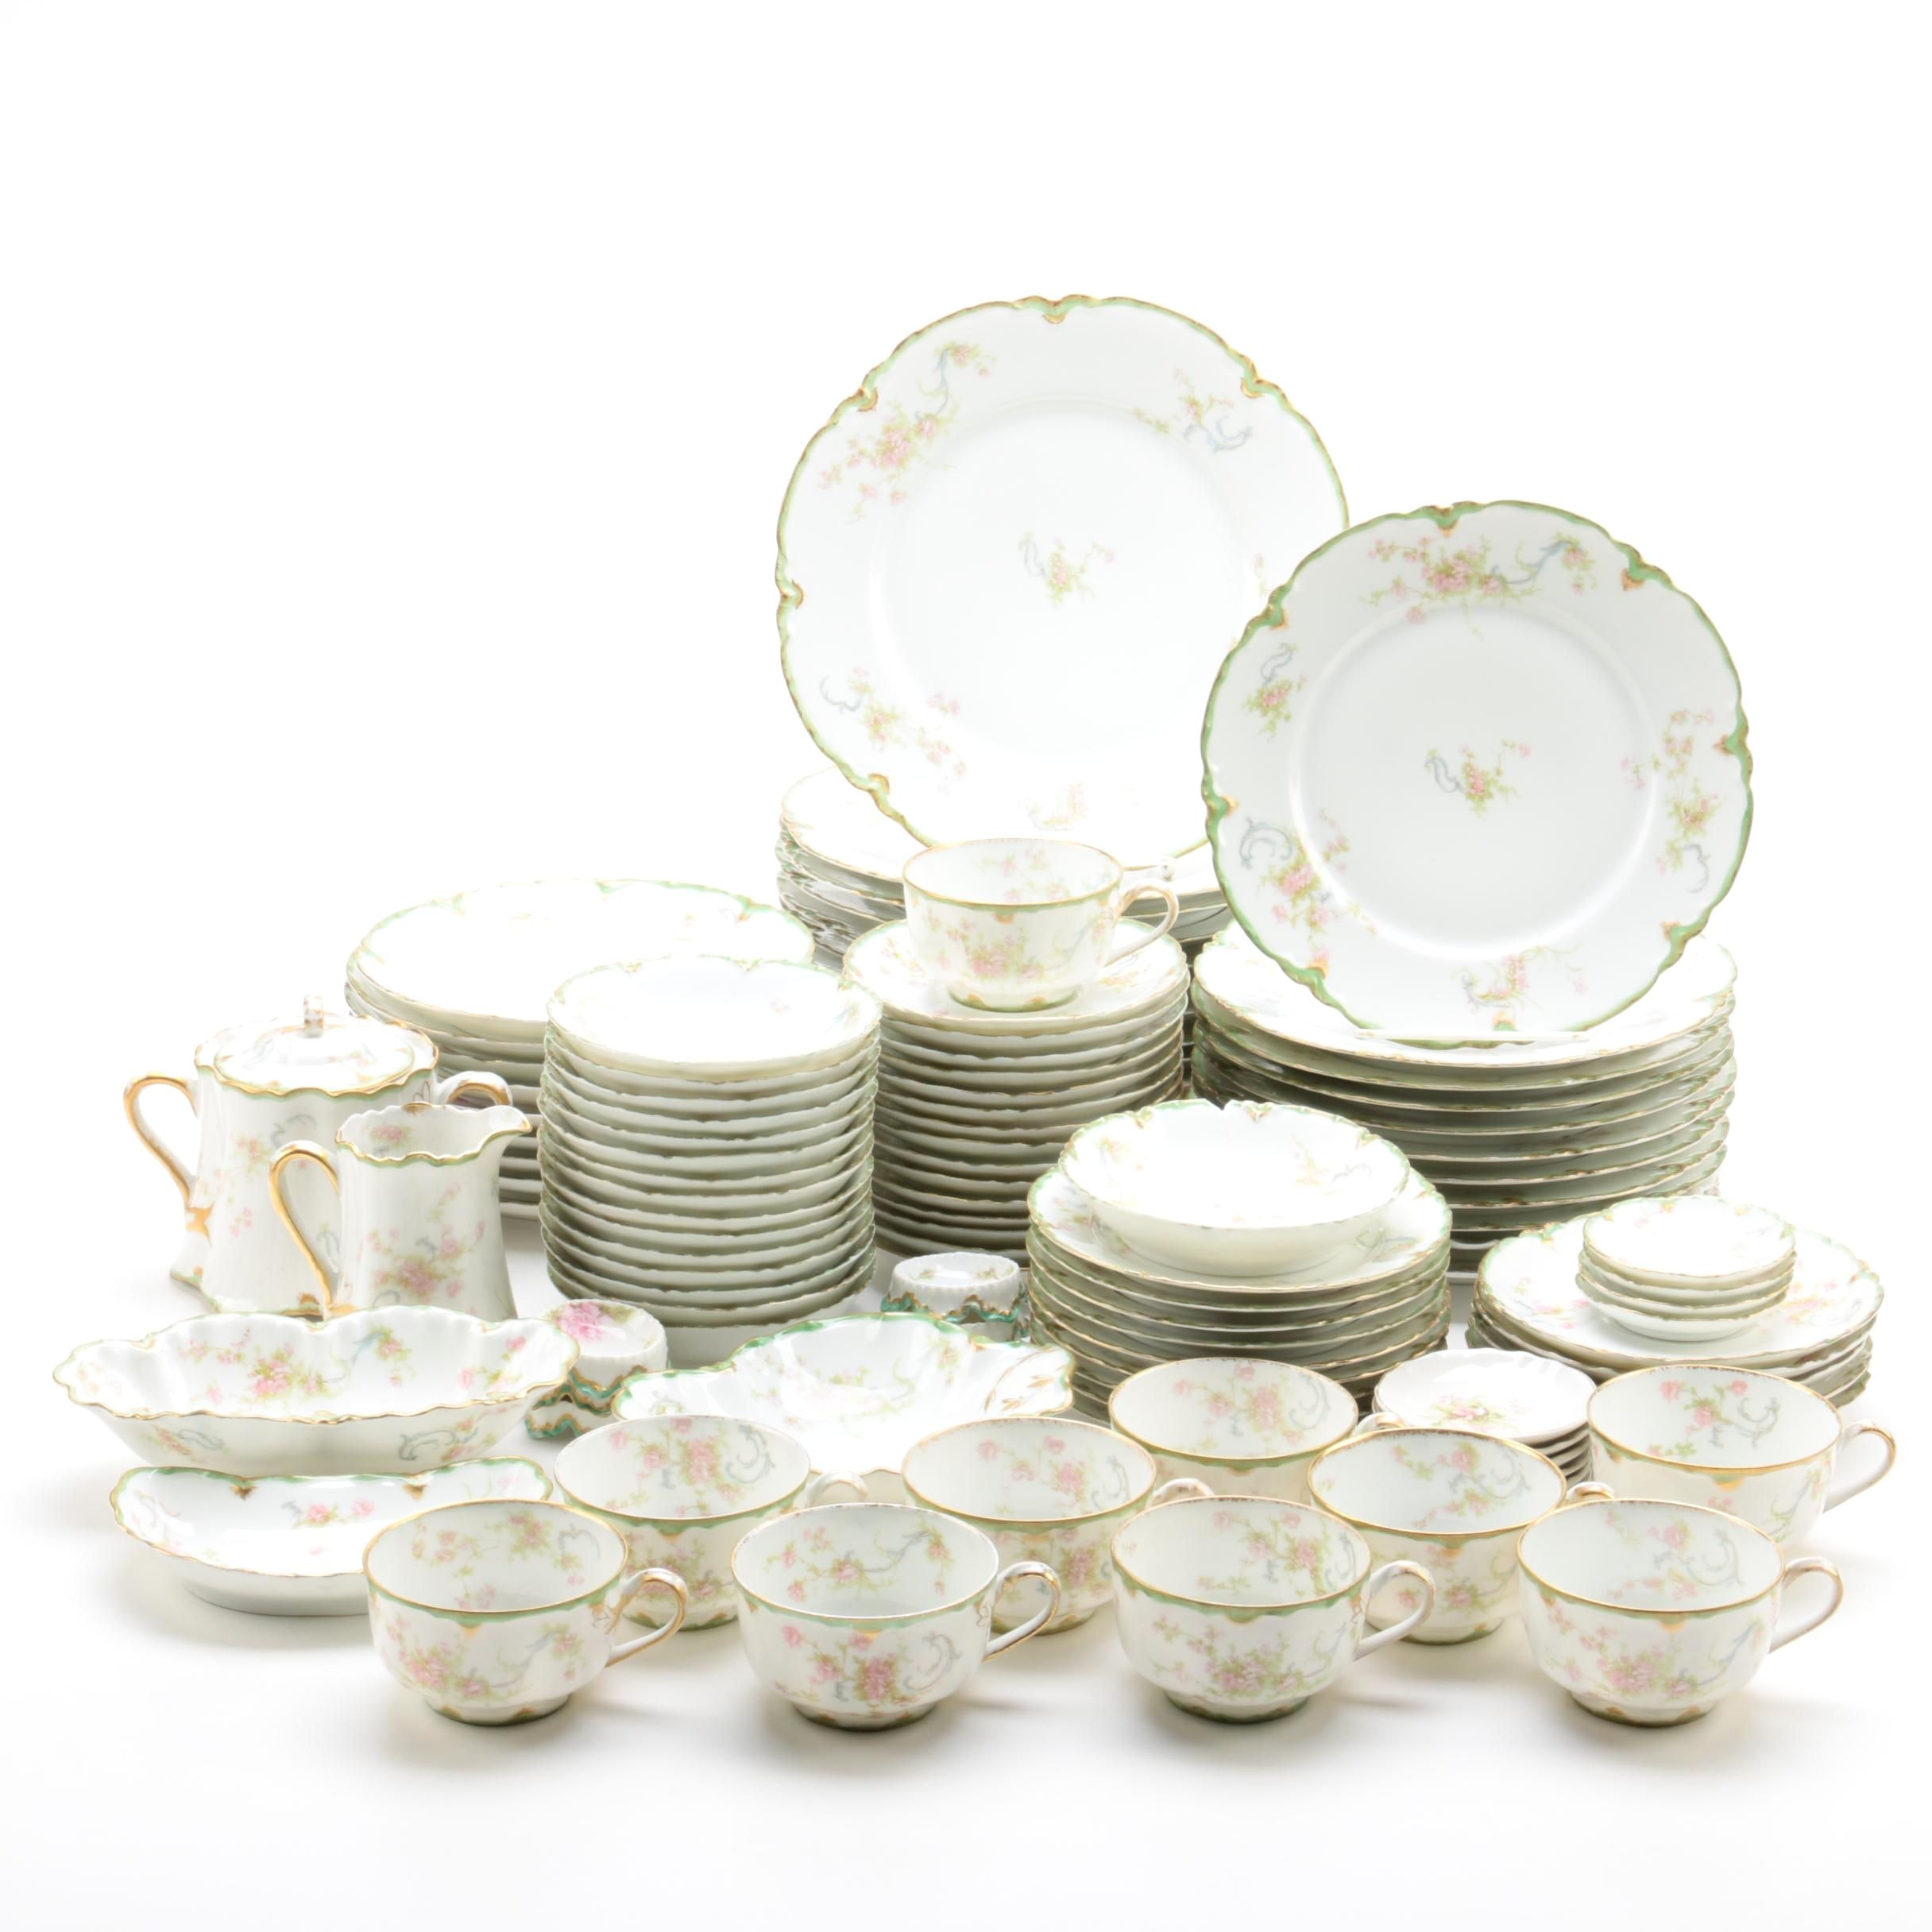 Vintage Haviland Limoges Porcelain Tableware